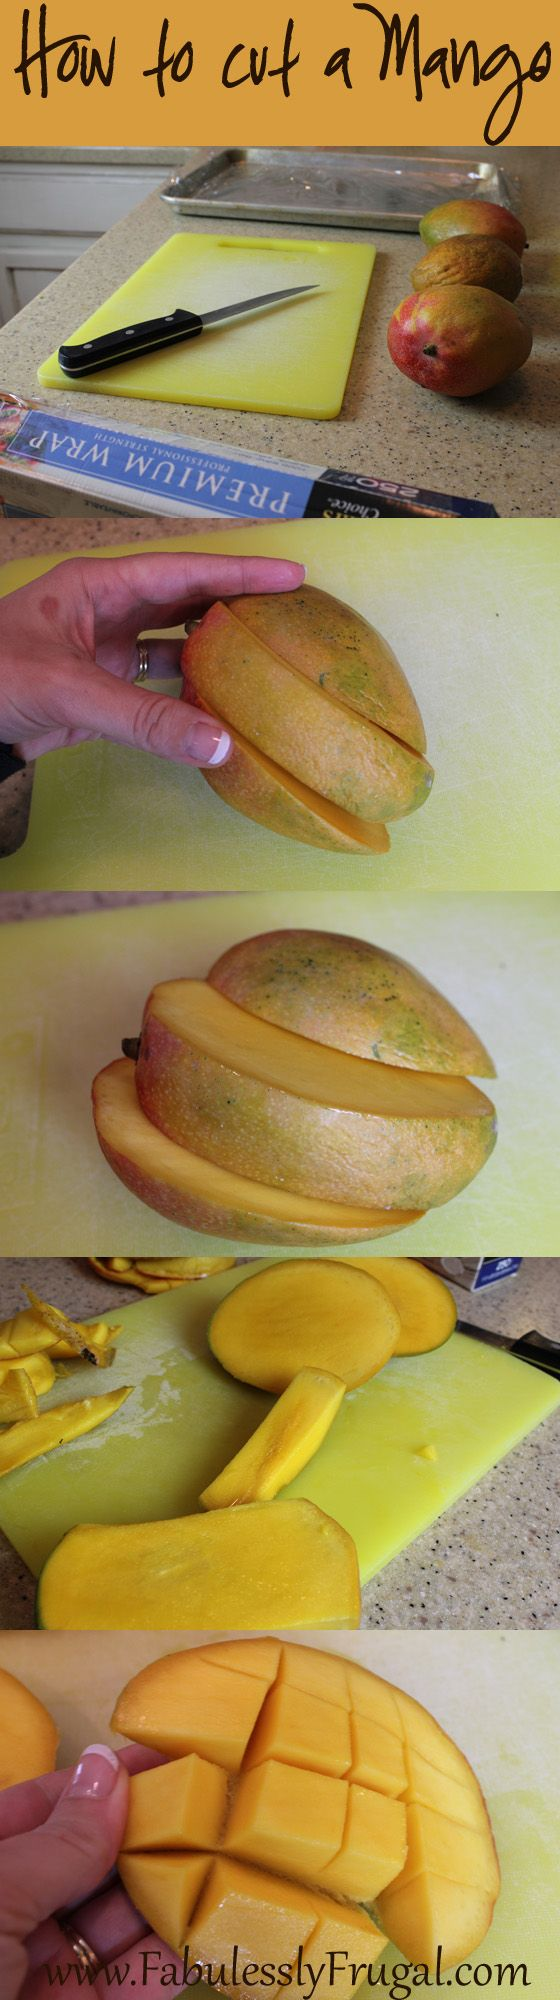 How To Cut And Freeze Mango